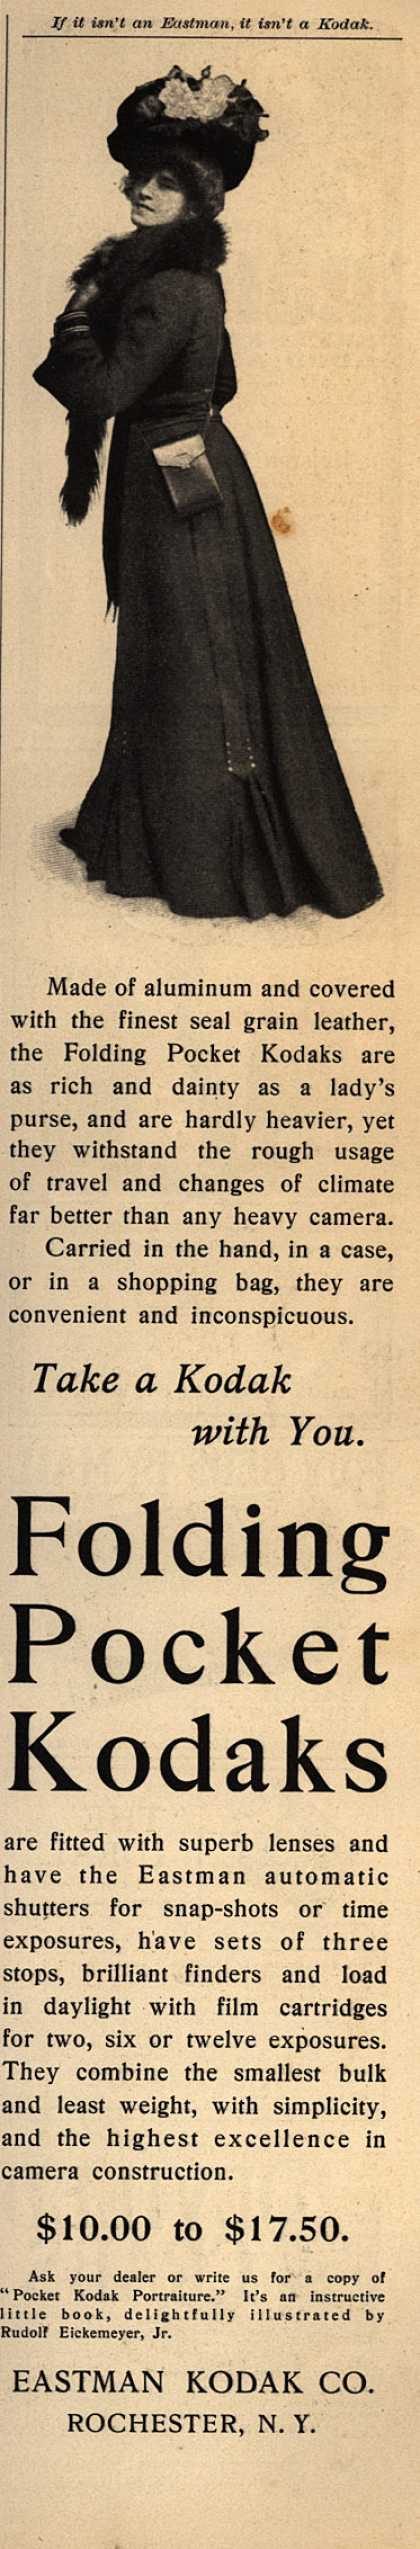 Kodak's Folding Pocket cameras – Take a Kodak with You. Folding Pocket Kodaks (1901)